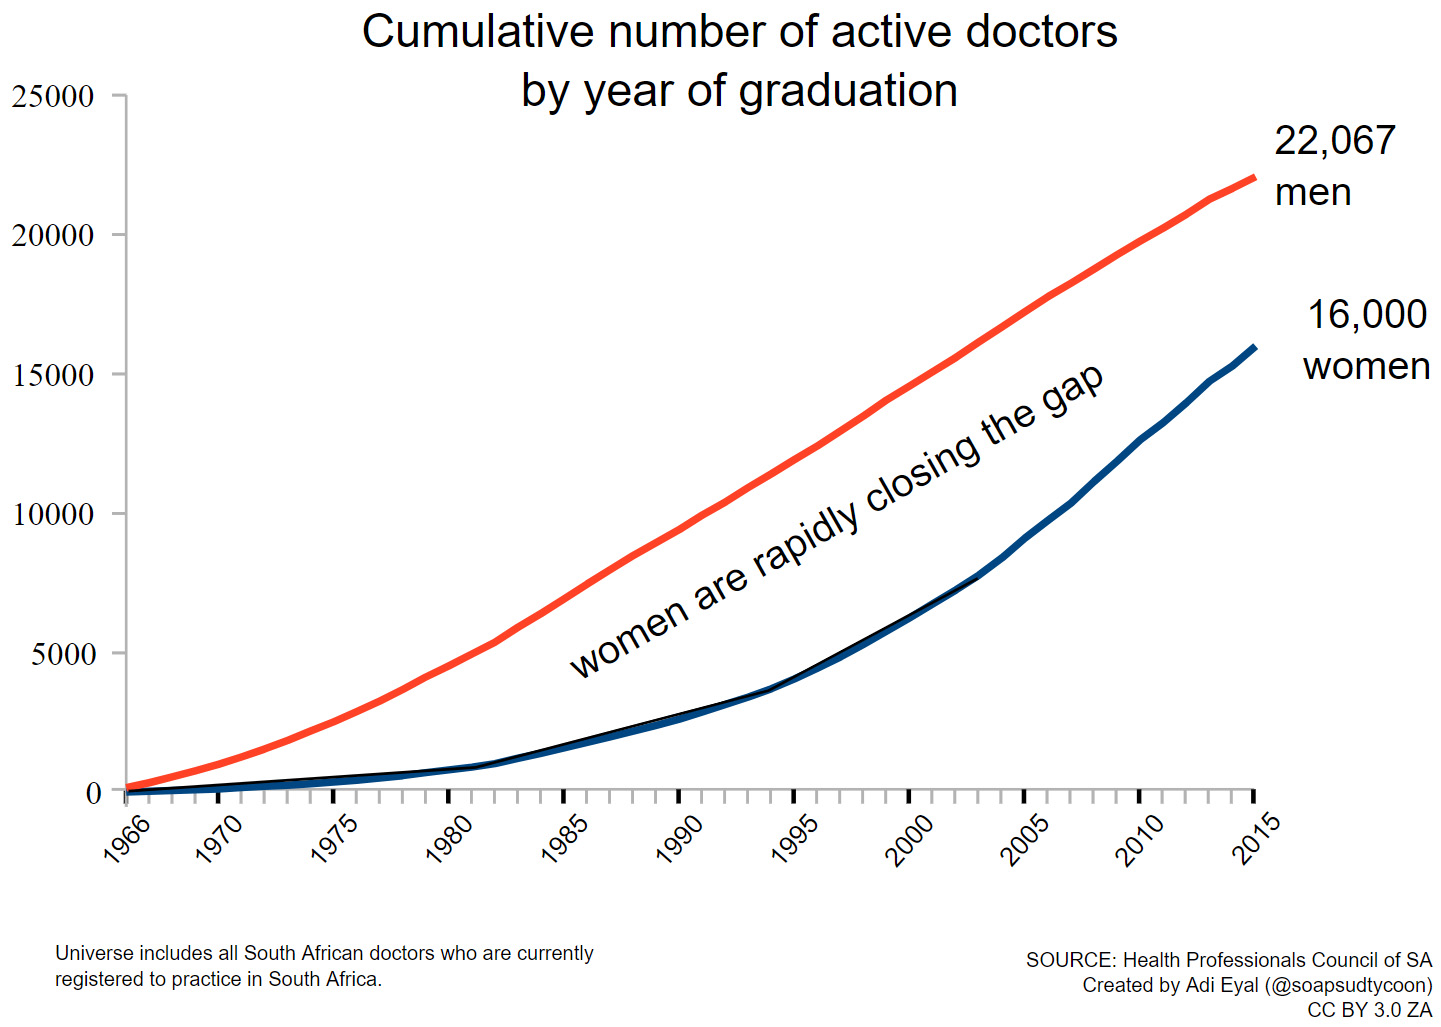 Chart showing the cumulative number of active doctors by year of graduation